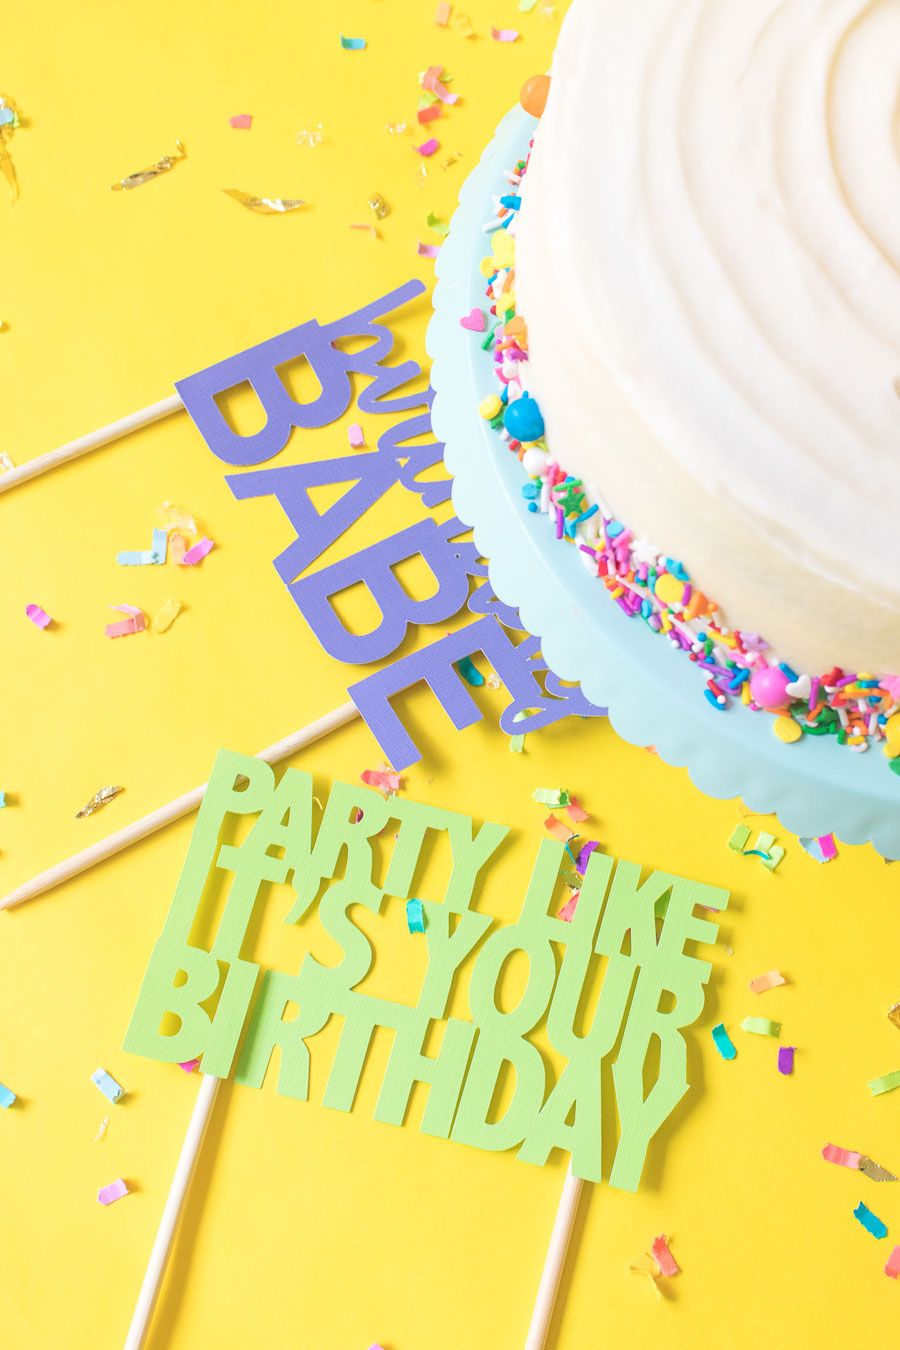 Printable Cake Toppers for Birthdays (+ Free SVG Templates!)